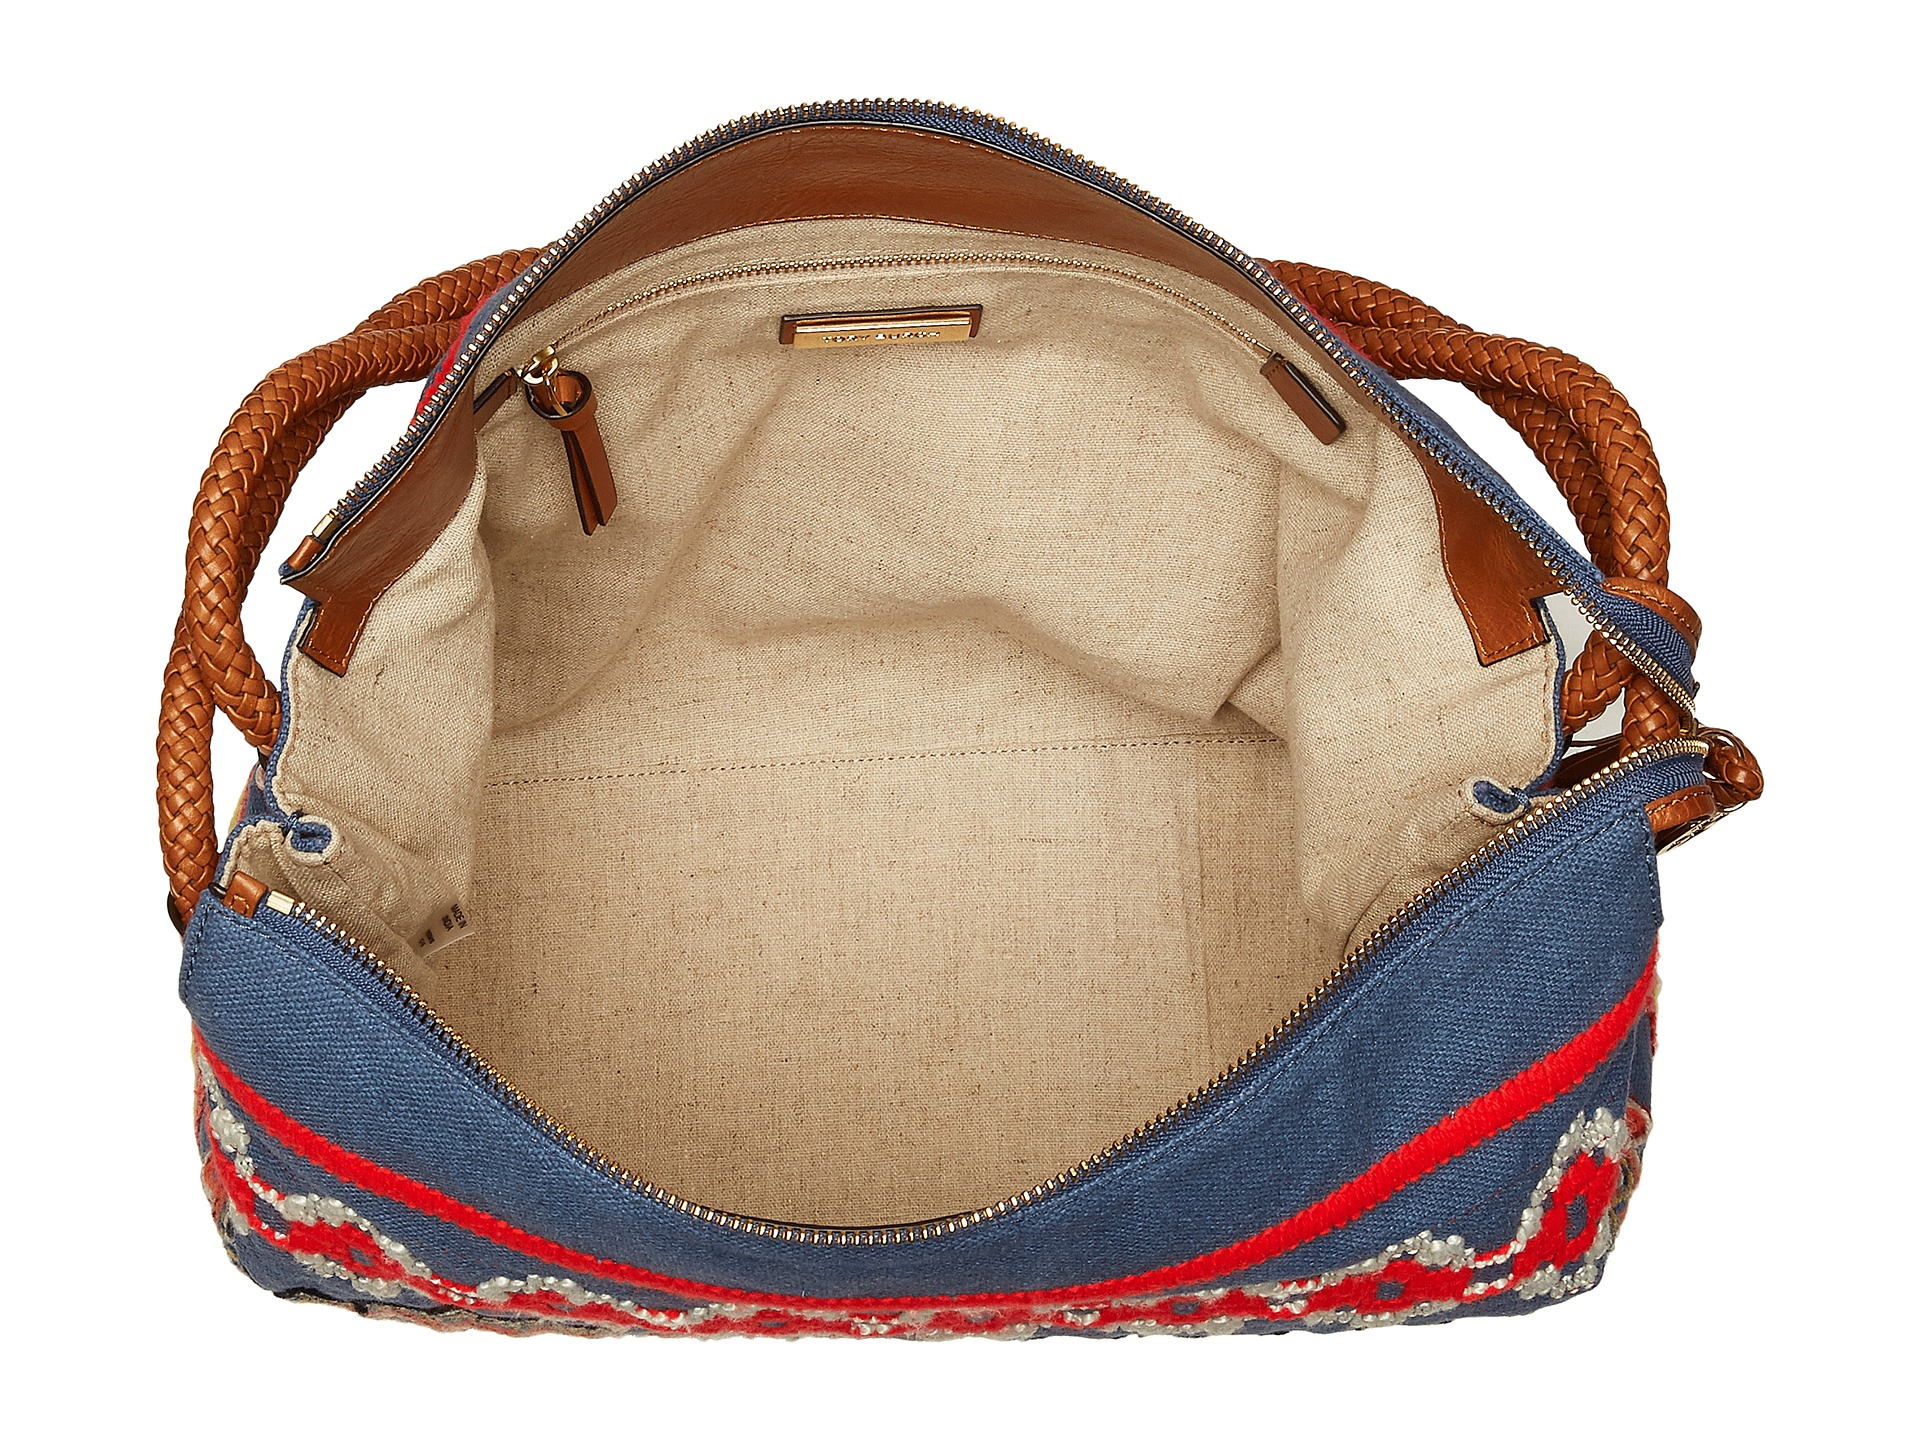 Tory Burch Taylor Embroidered Hobo at Luxury.Zappos.com